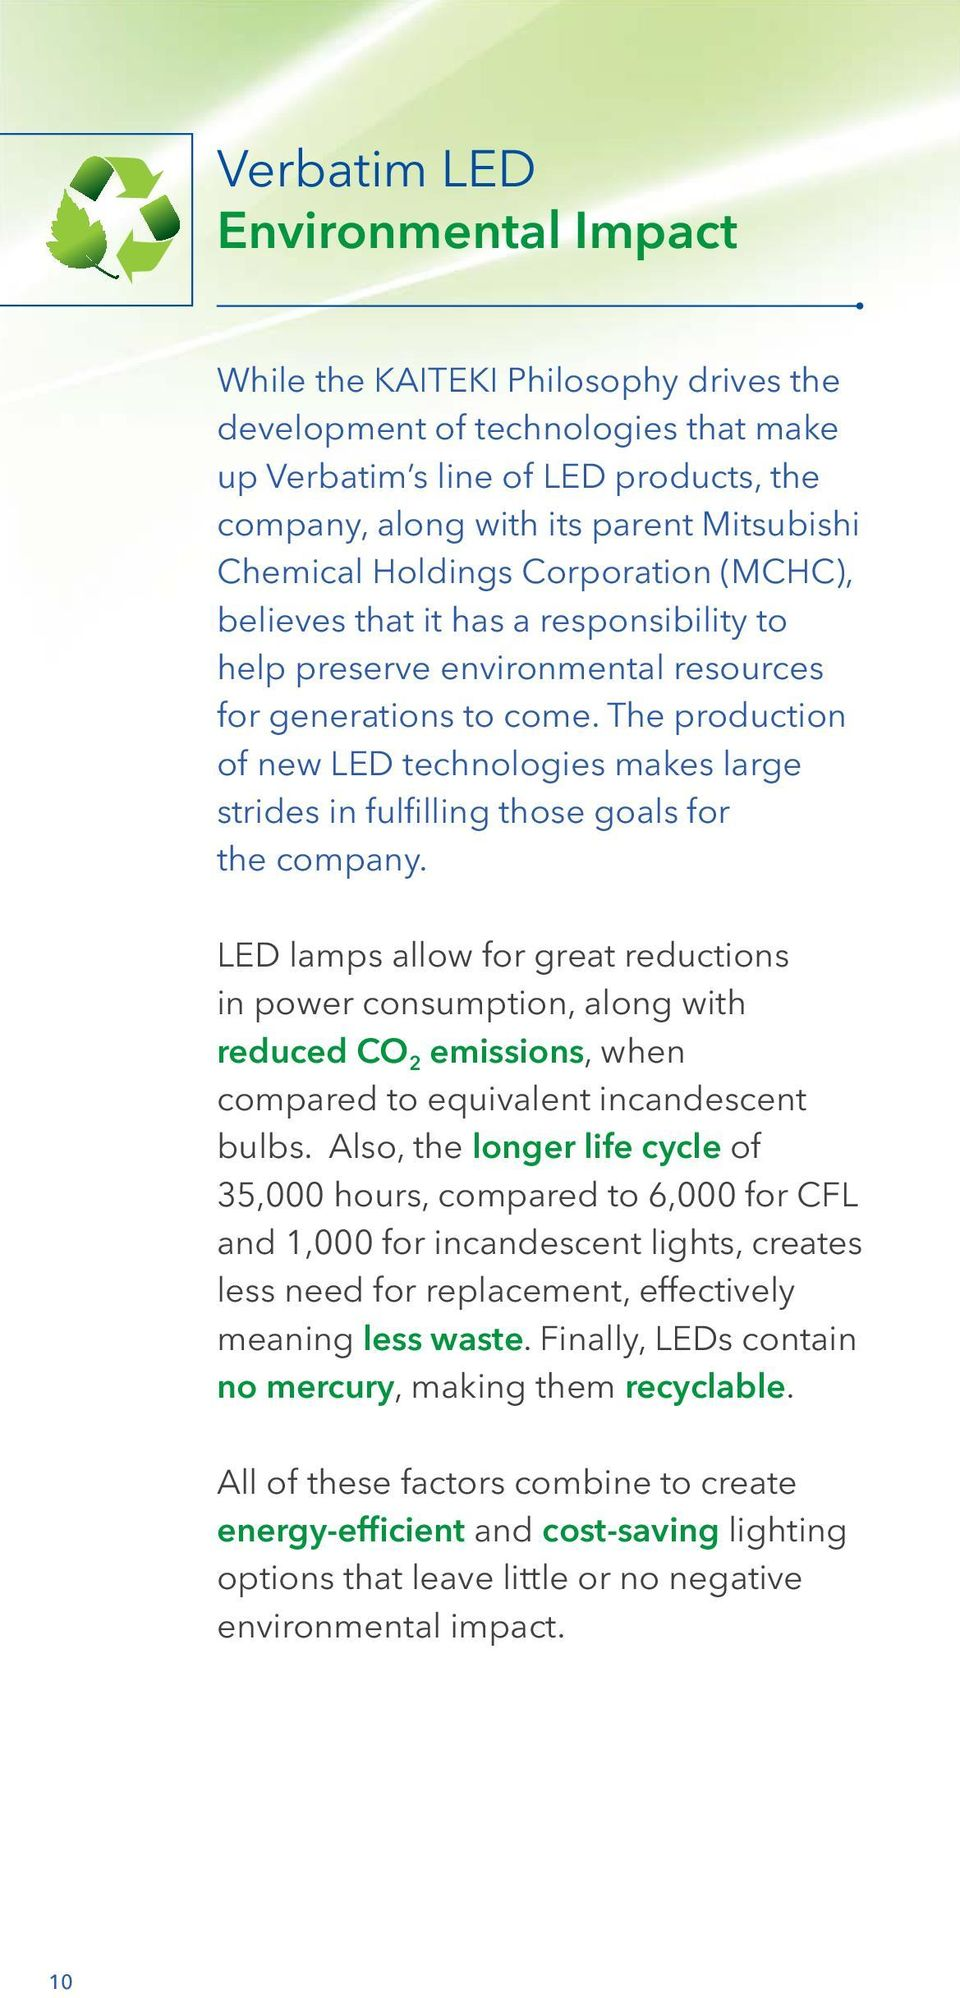 The production of new LED technologies makes large strides in fulfilling those goals for the company.